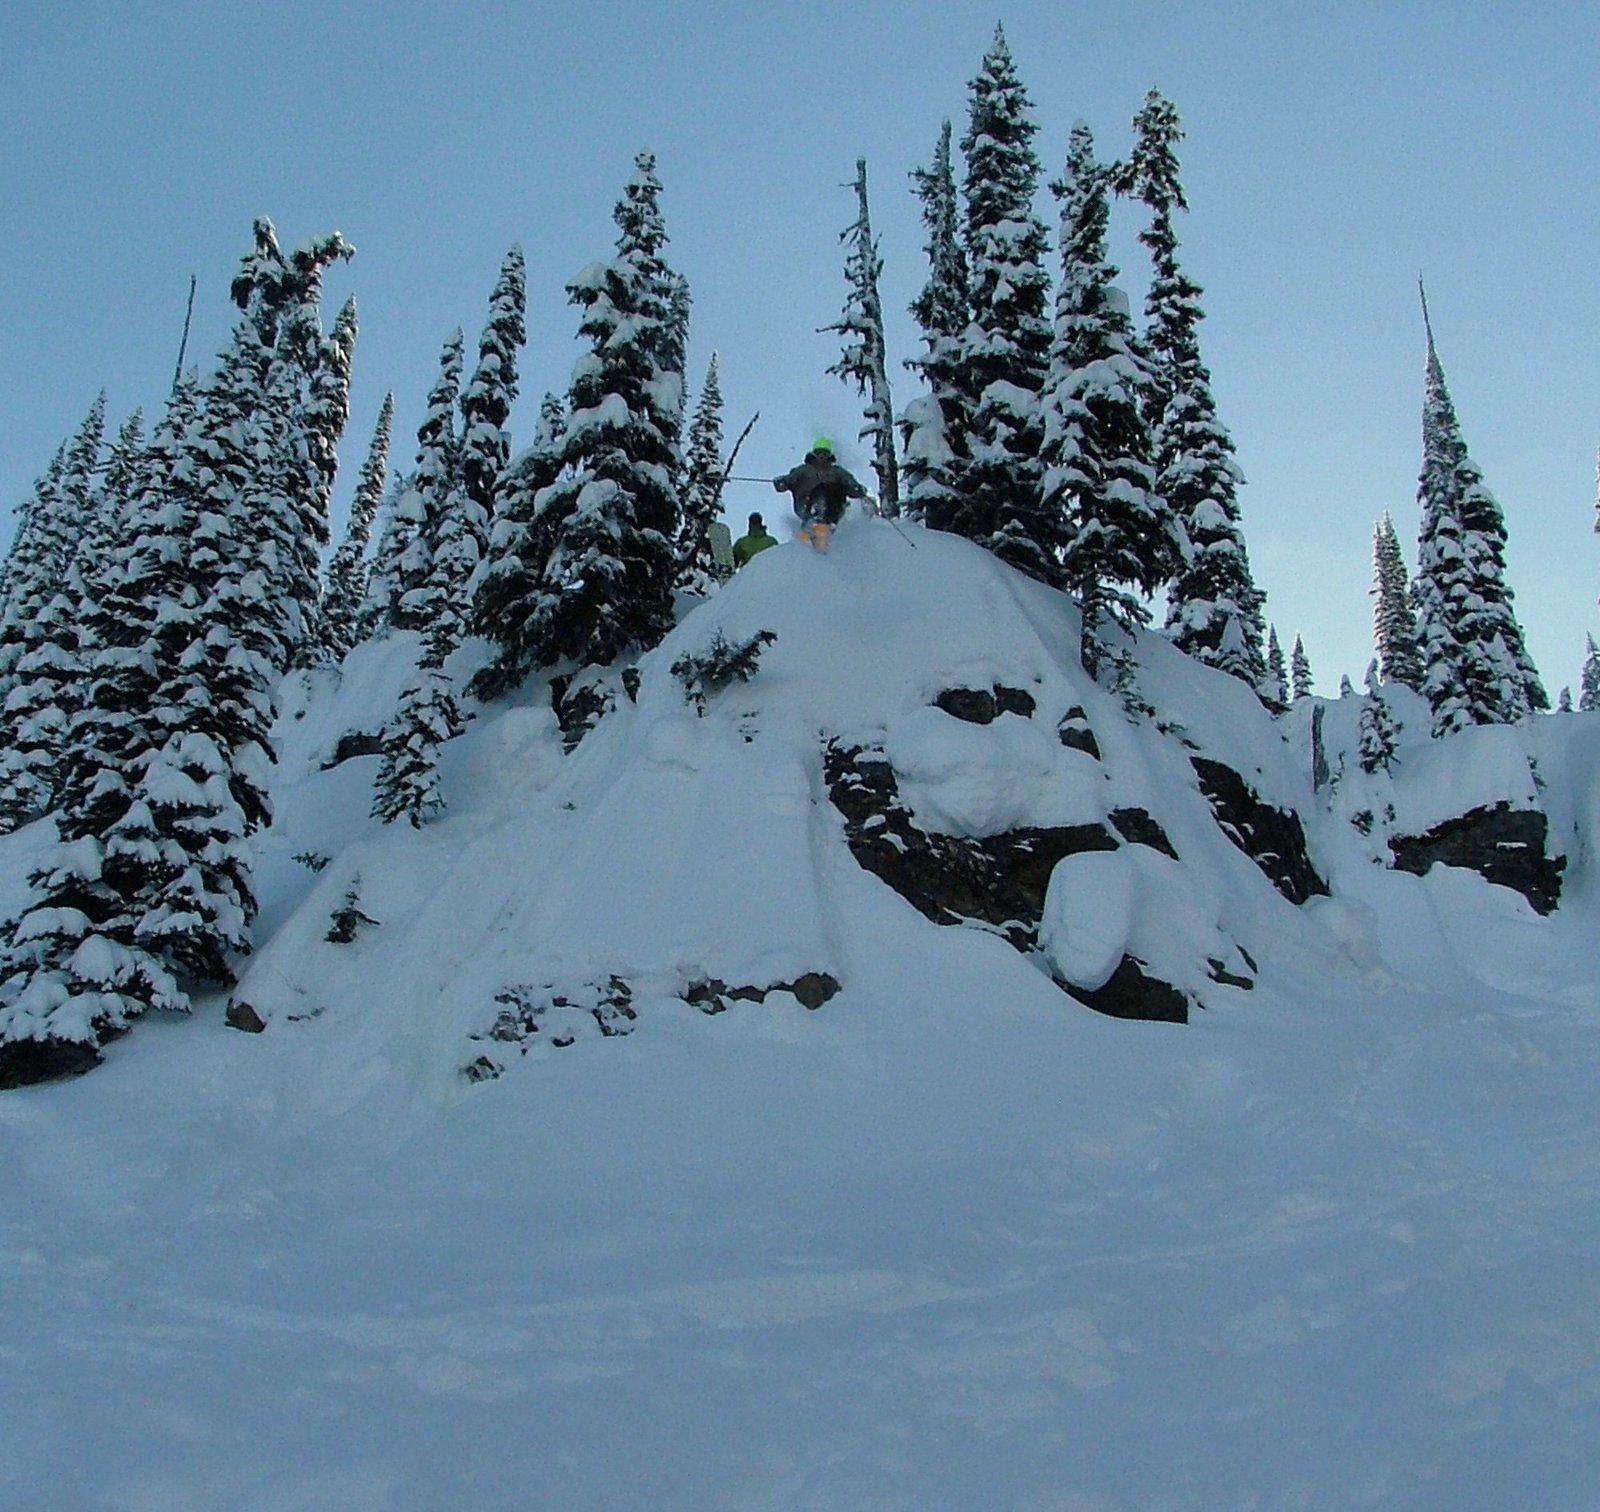 Pow revelstoke smaller drop